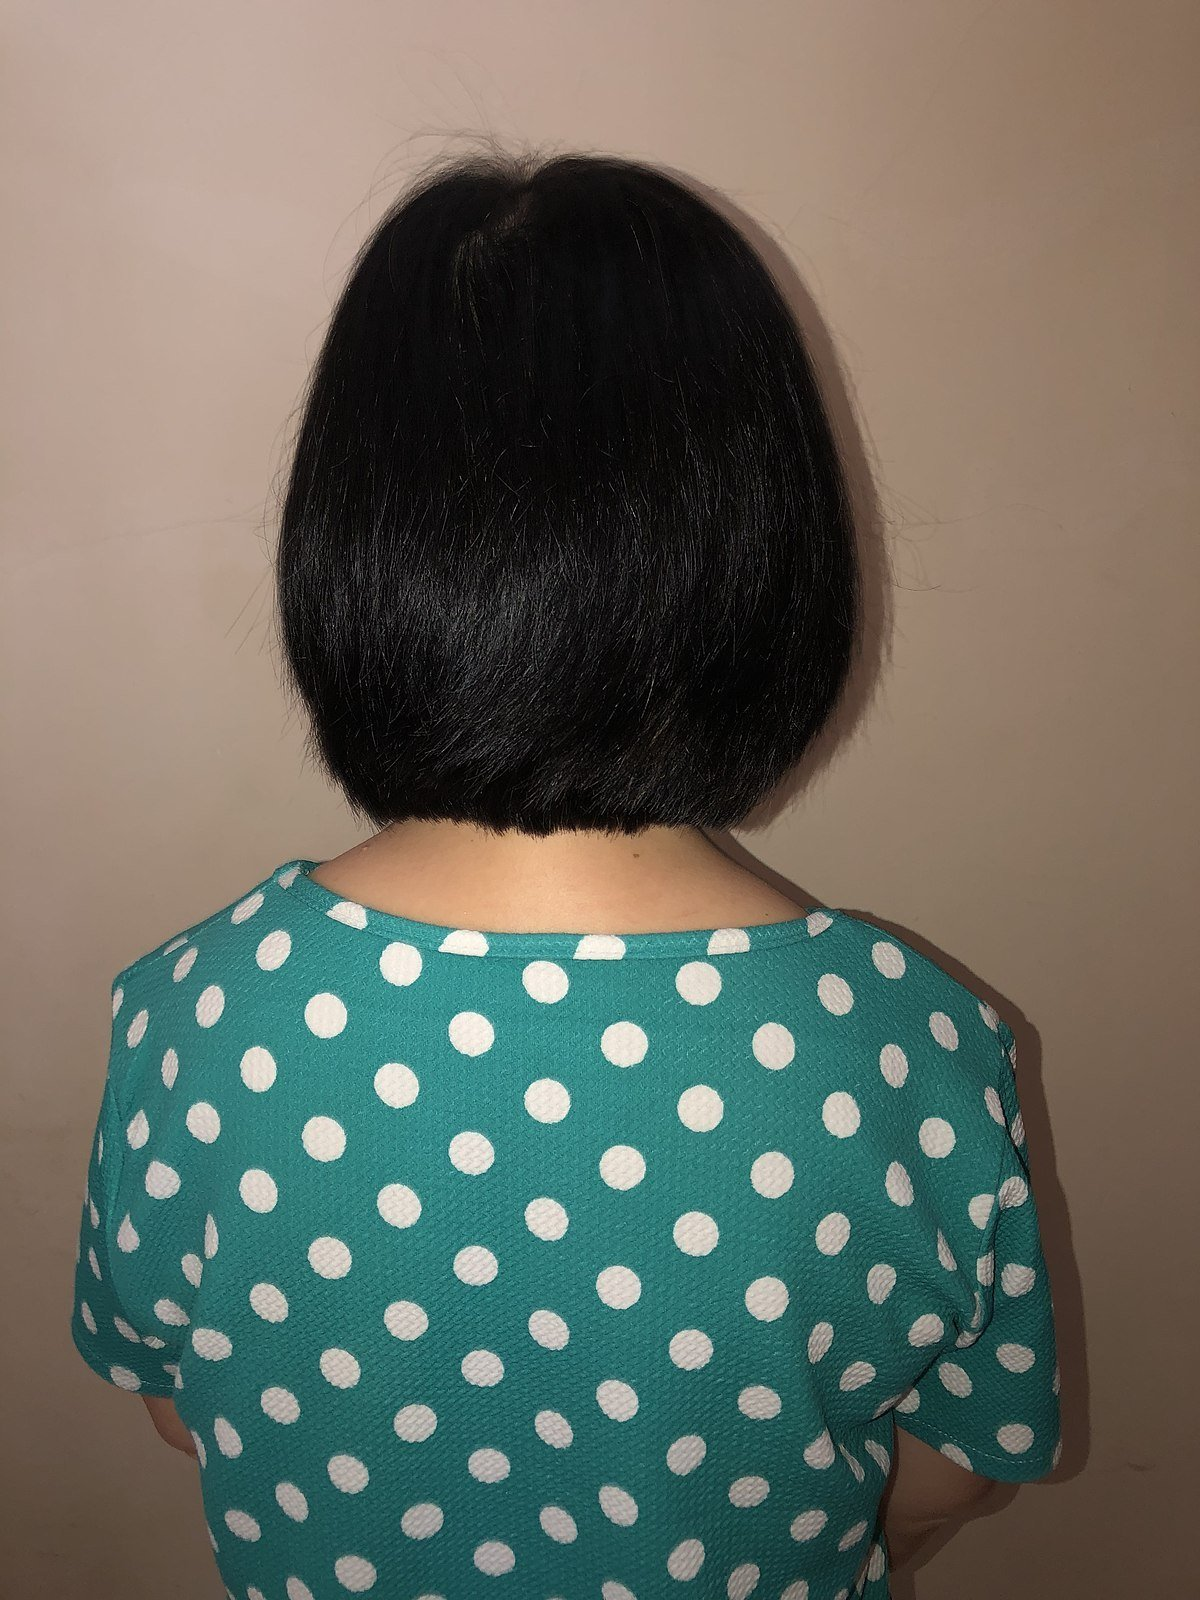 New Bob Cut Wikipedia Ideas With Pictures Original 1024 x 768